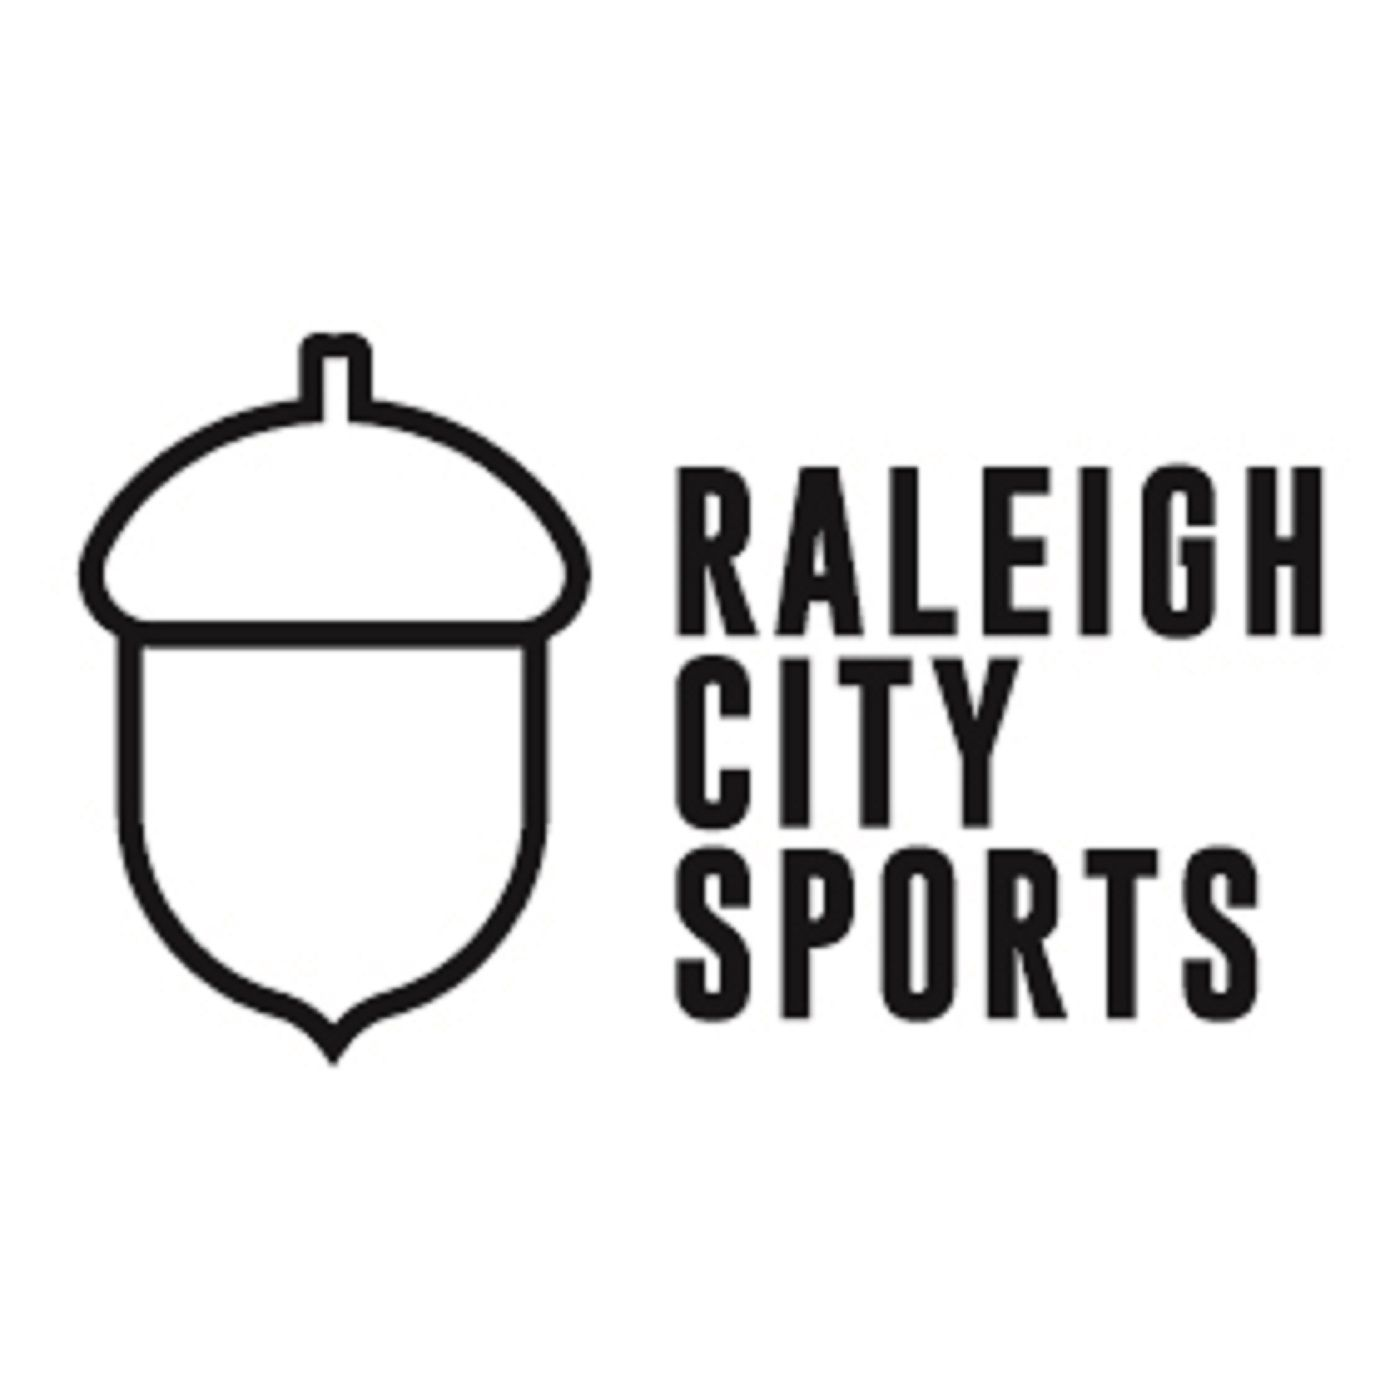 Raleigh City Sports show image